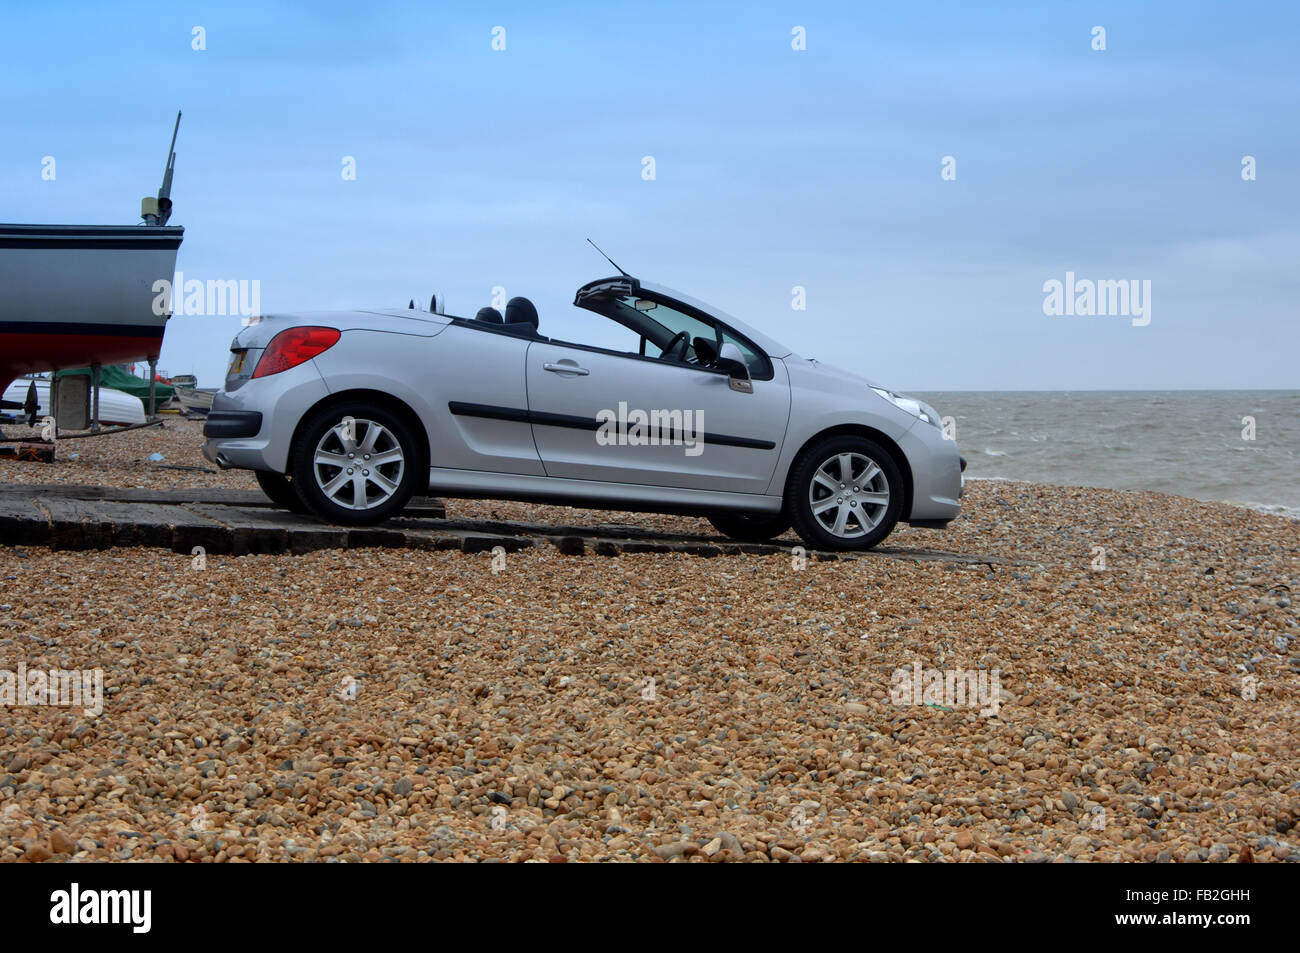 Peugeot 206 Cc Coupe Convertible Open Top Car With